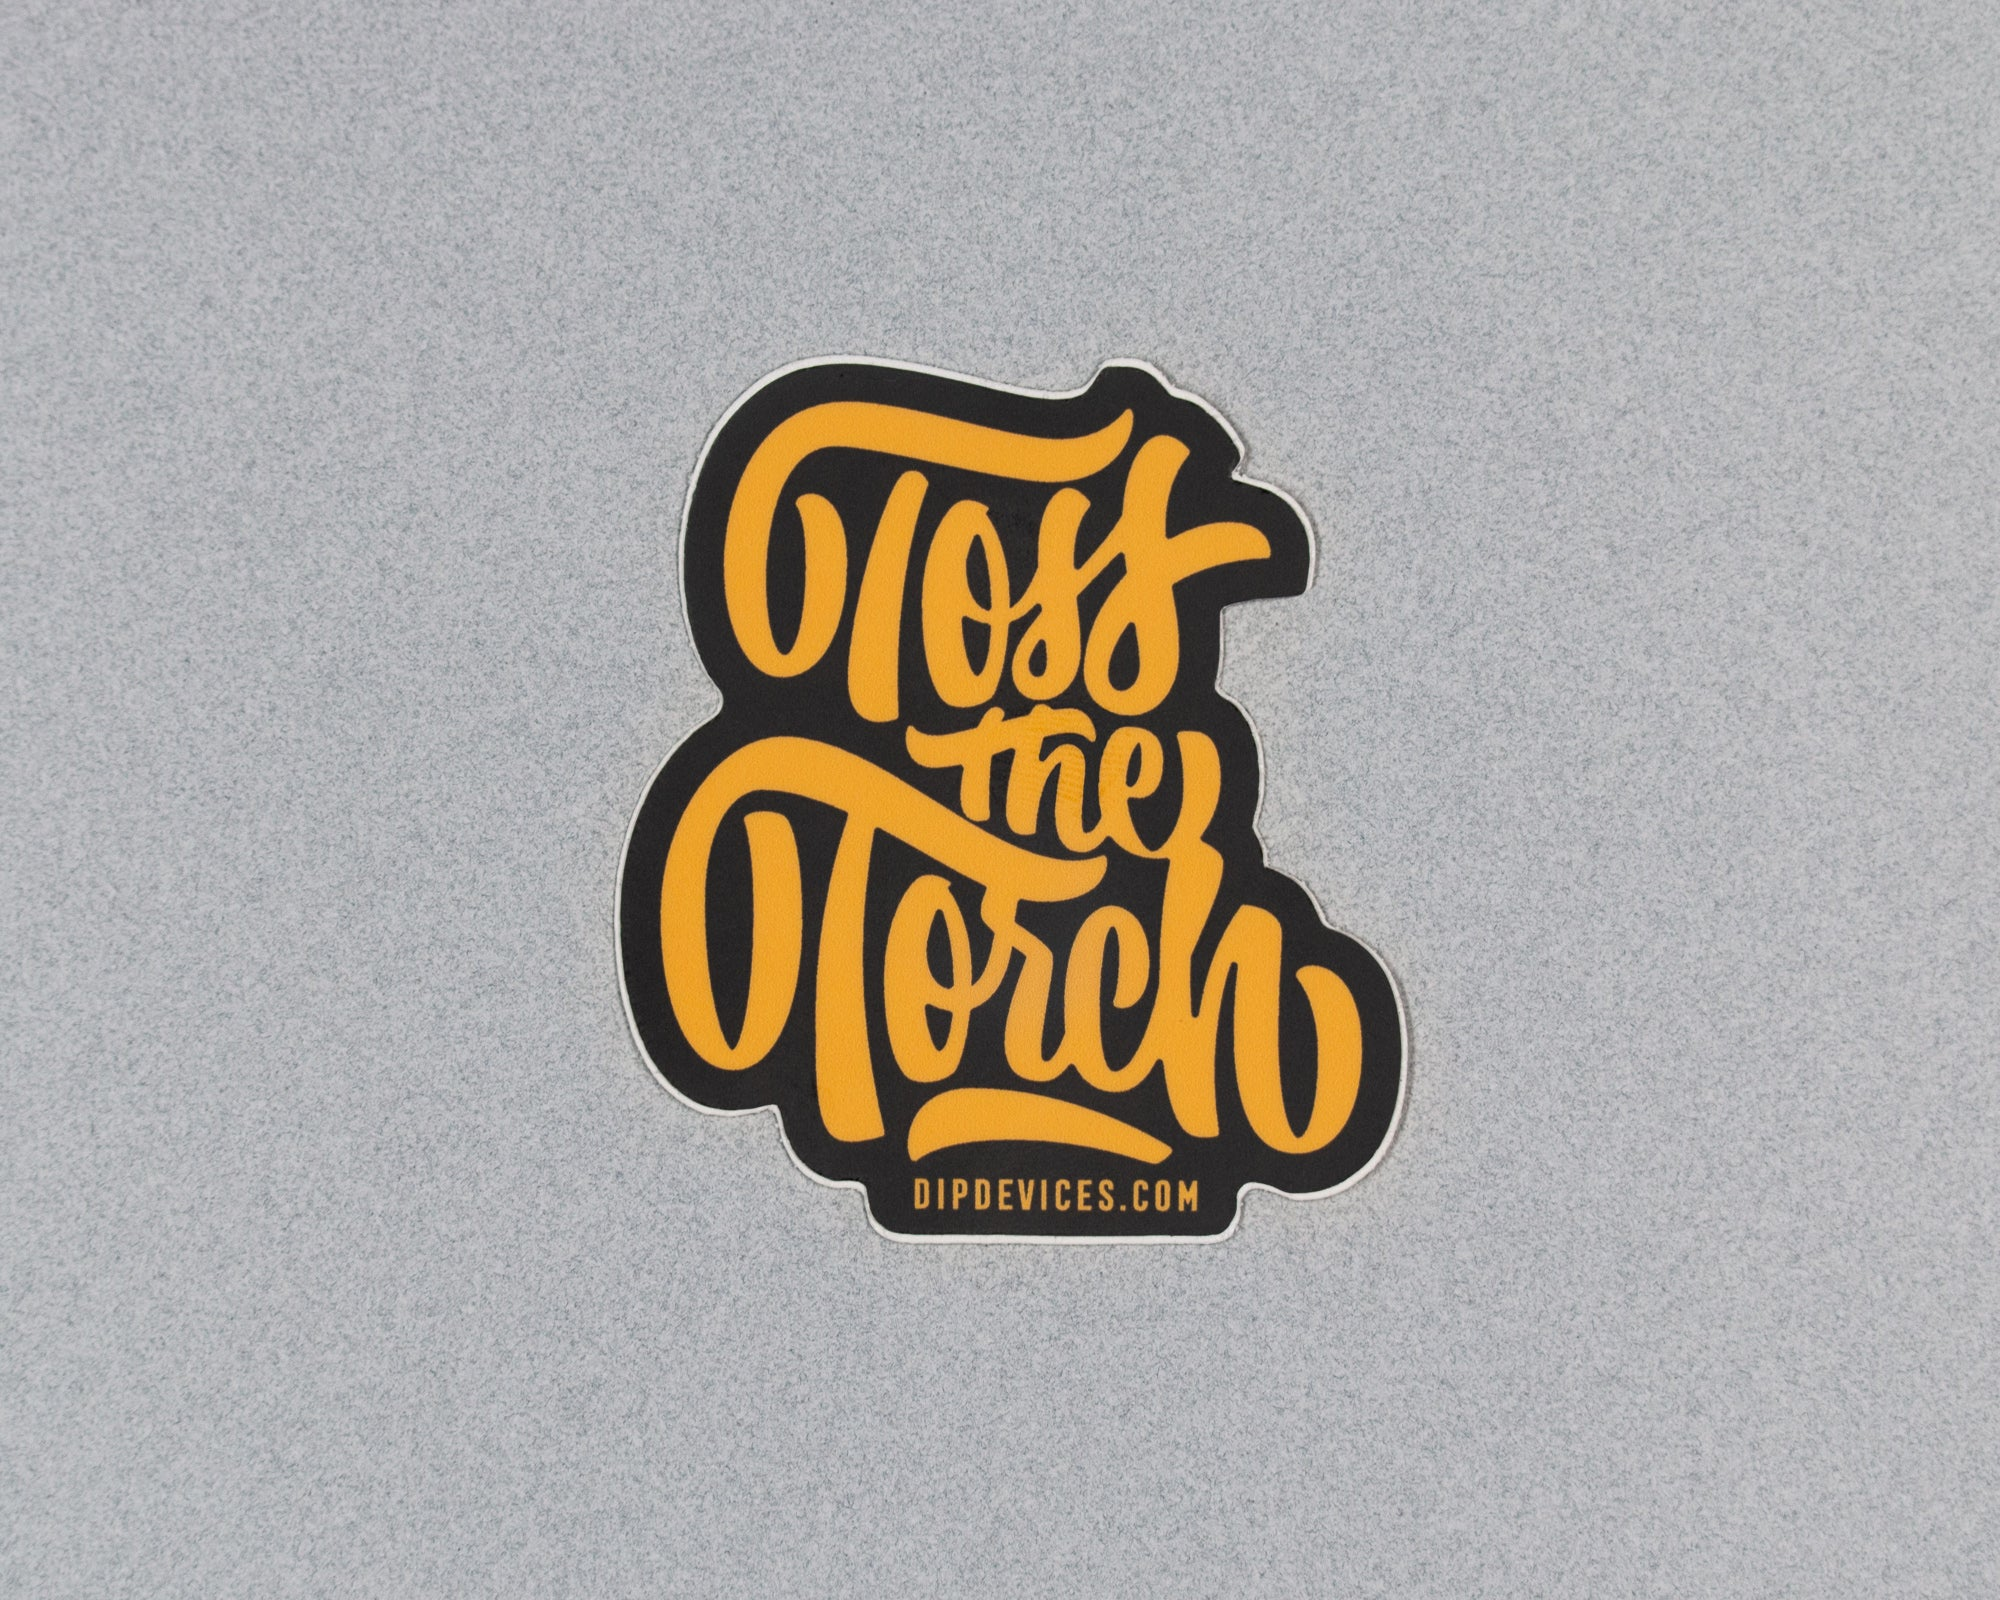 Toss the Torch sticker